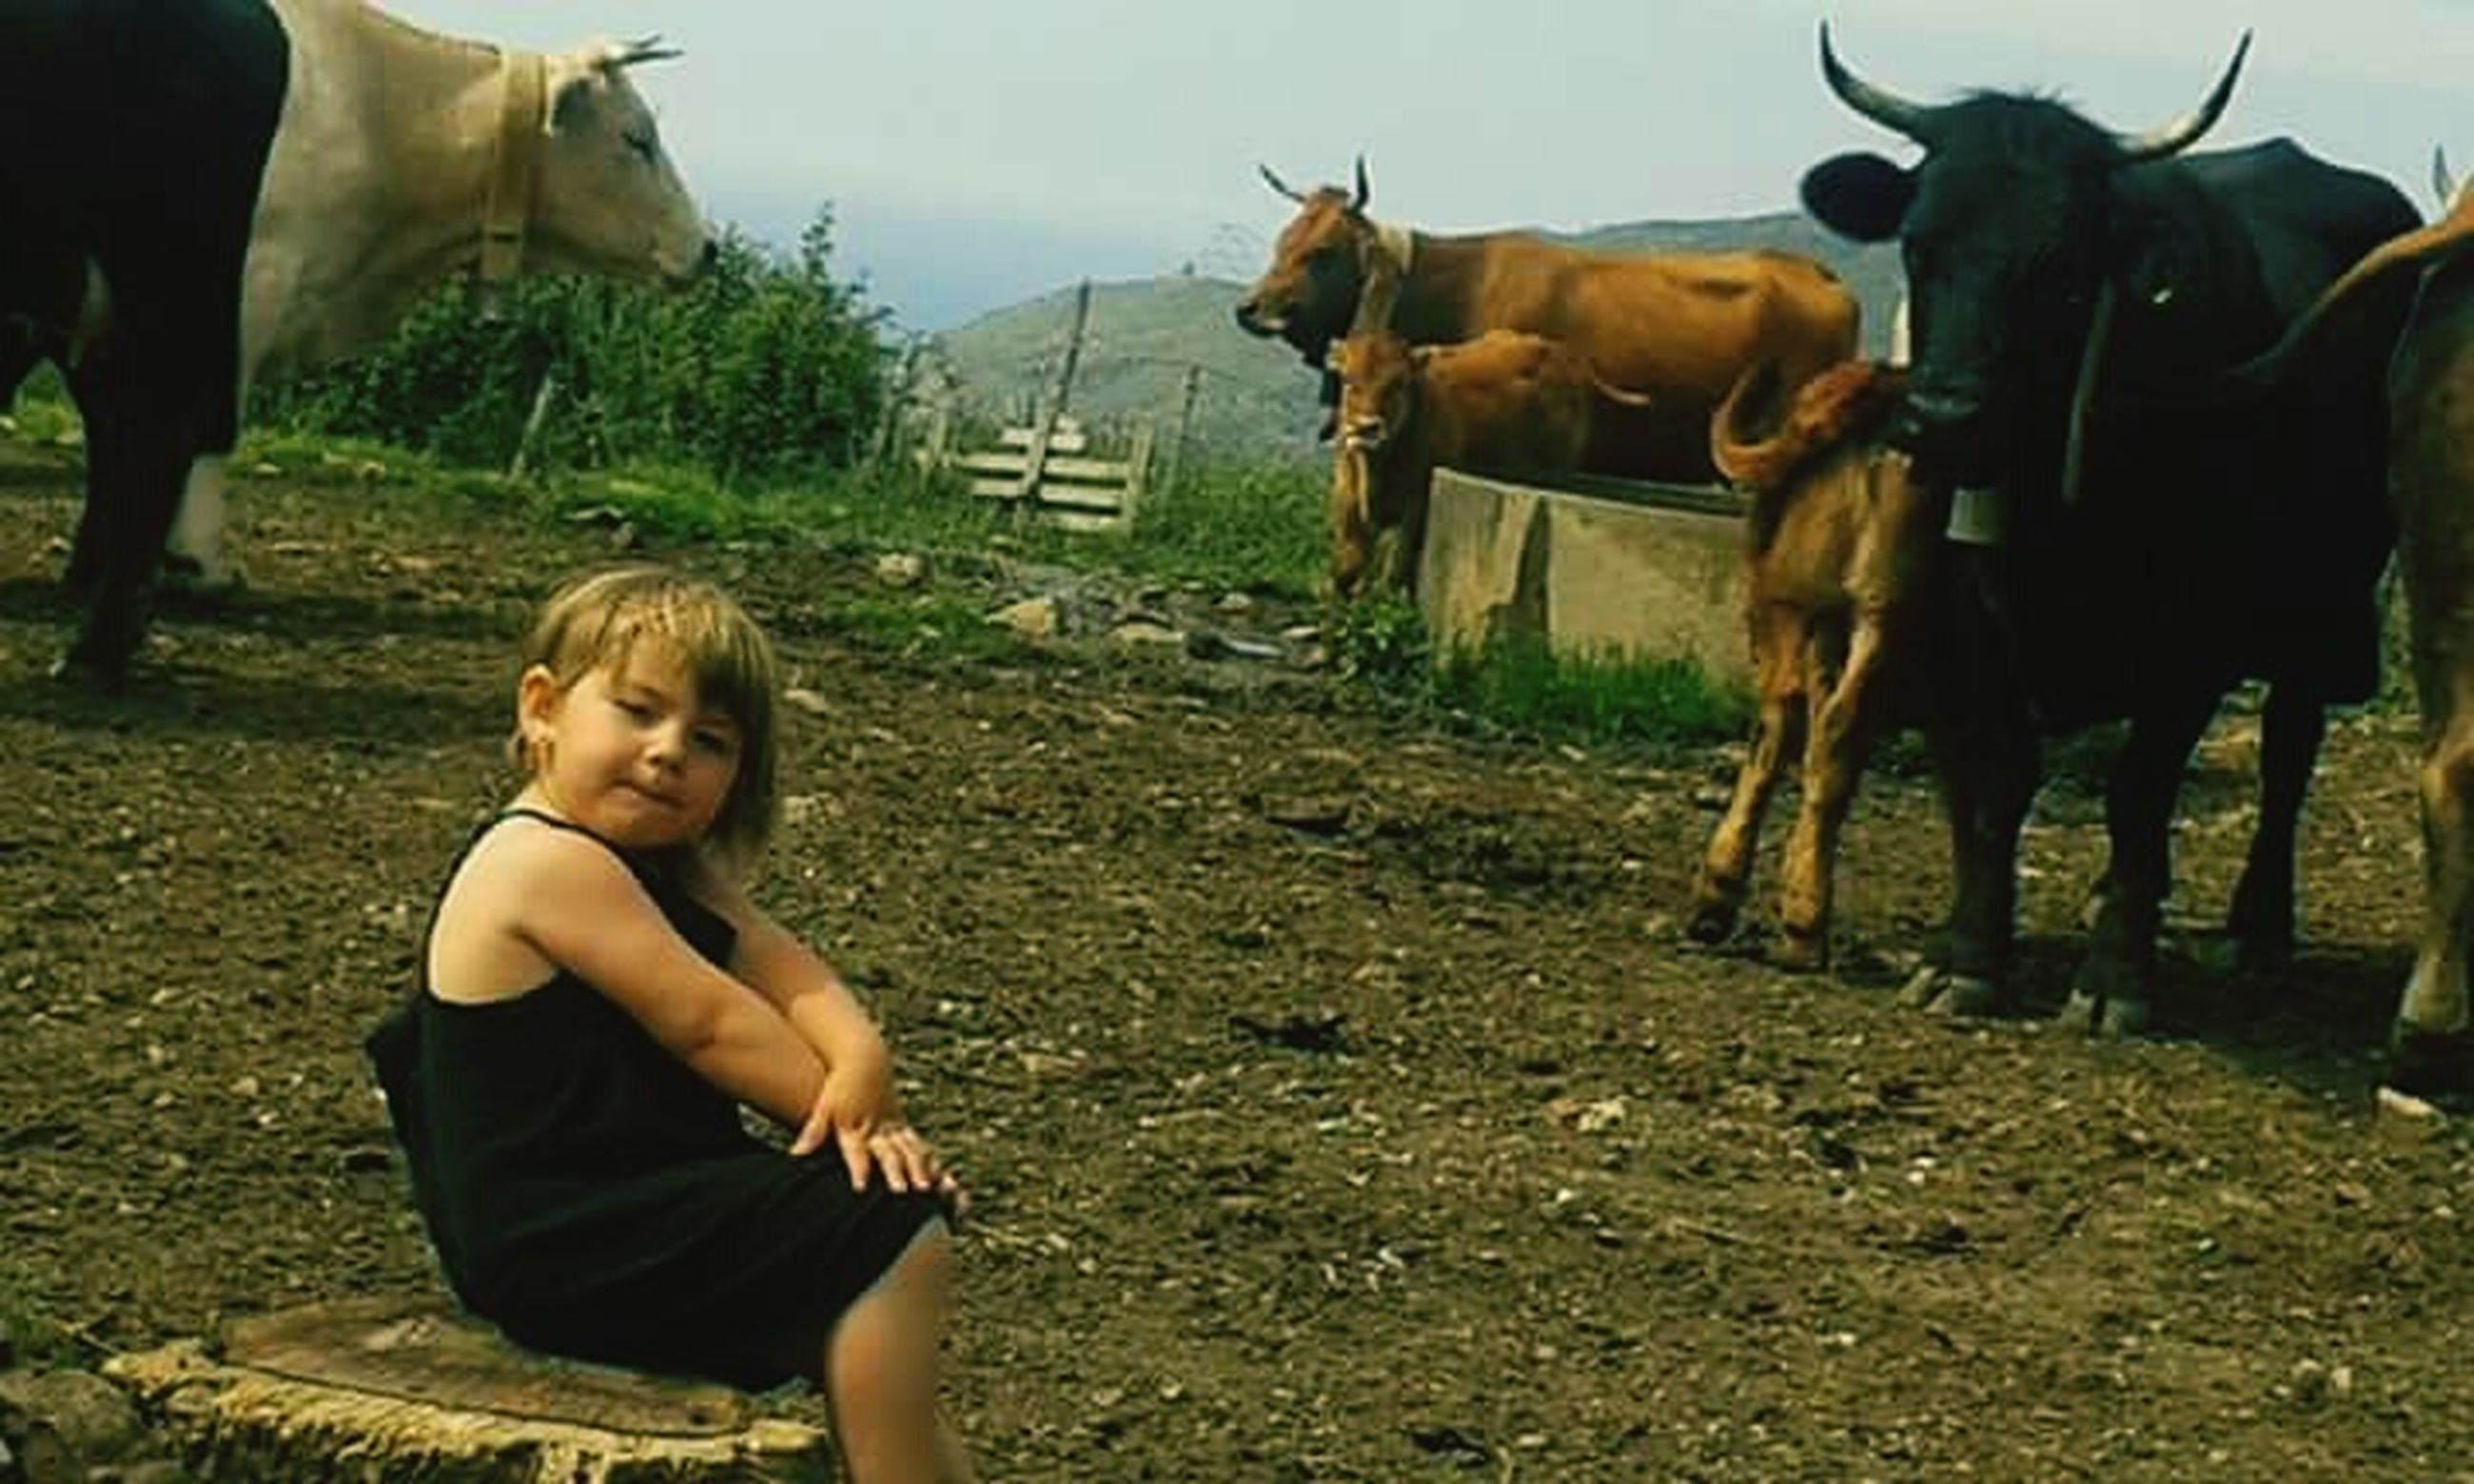 domestic animals, livestock, mammal, animal themes, child, blond hair, horse, childhood, one person, people, outdoors, real people, nature, day, adult